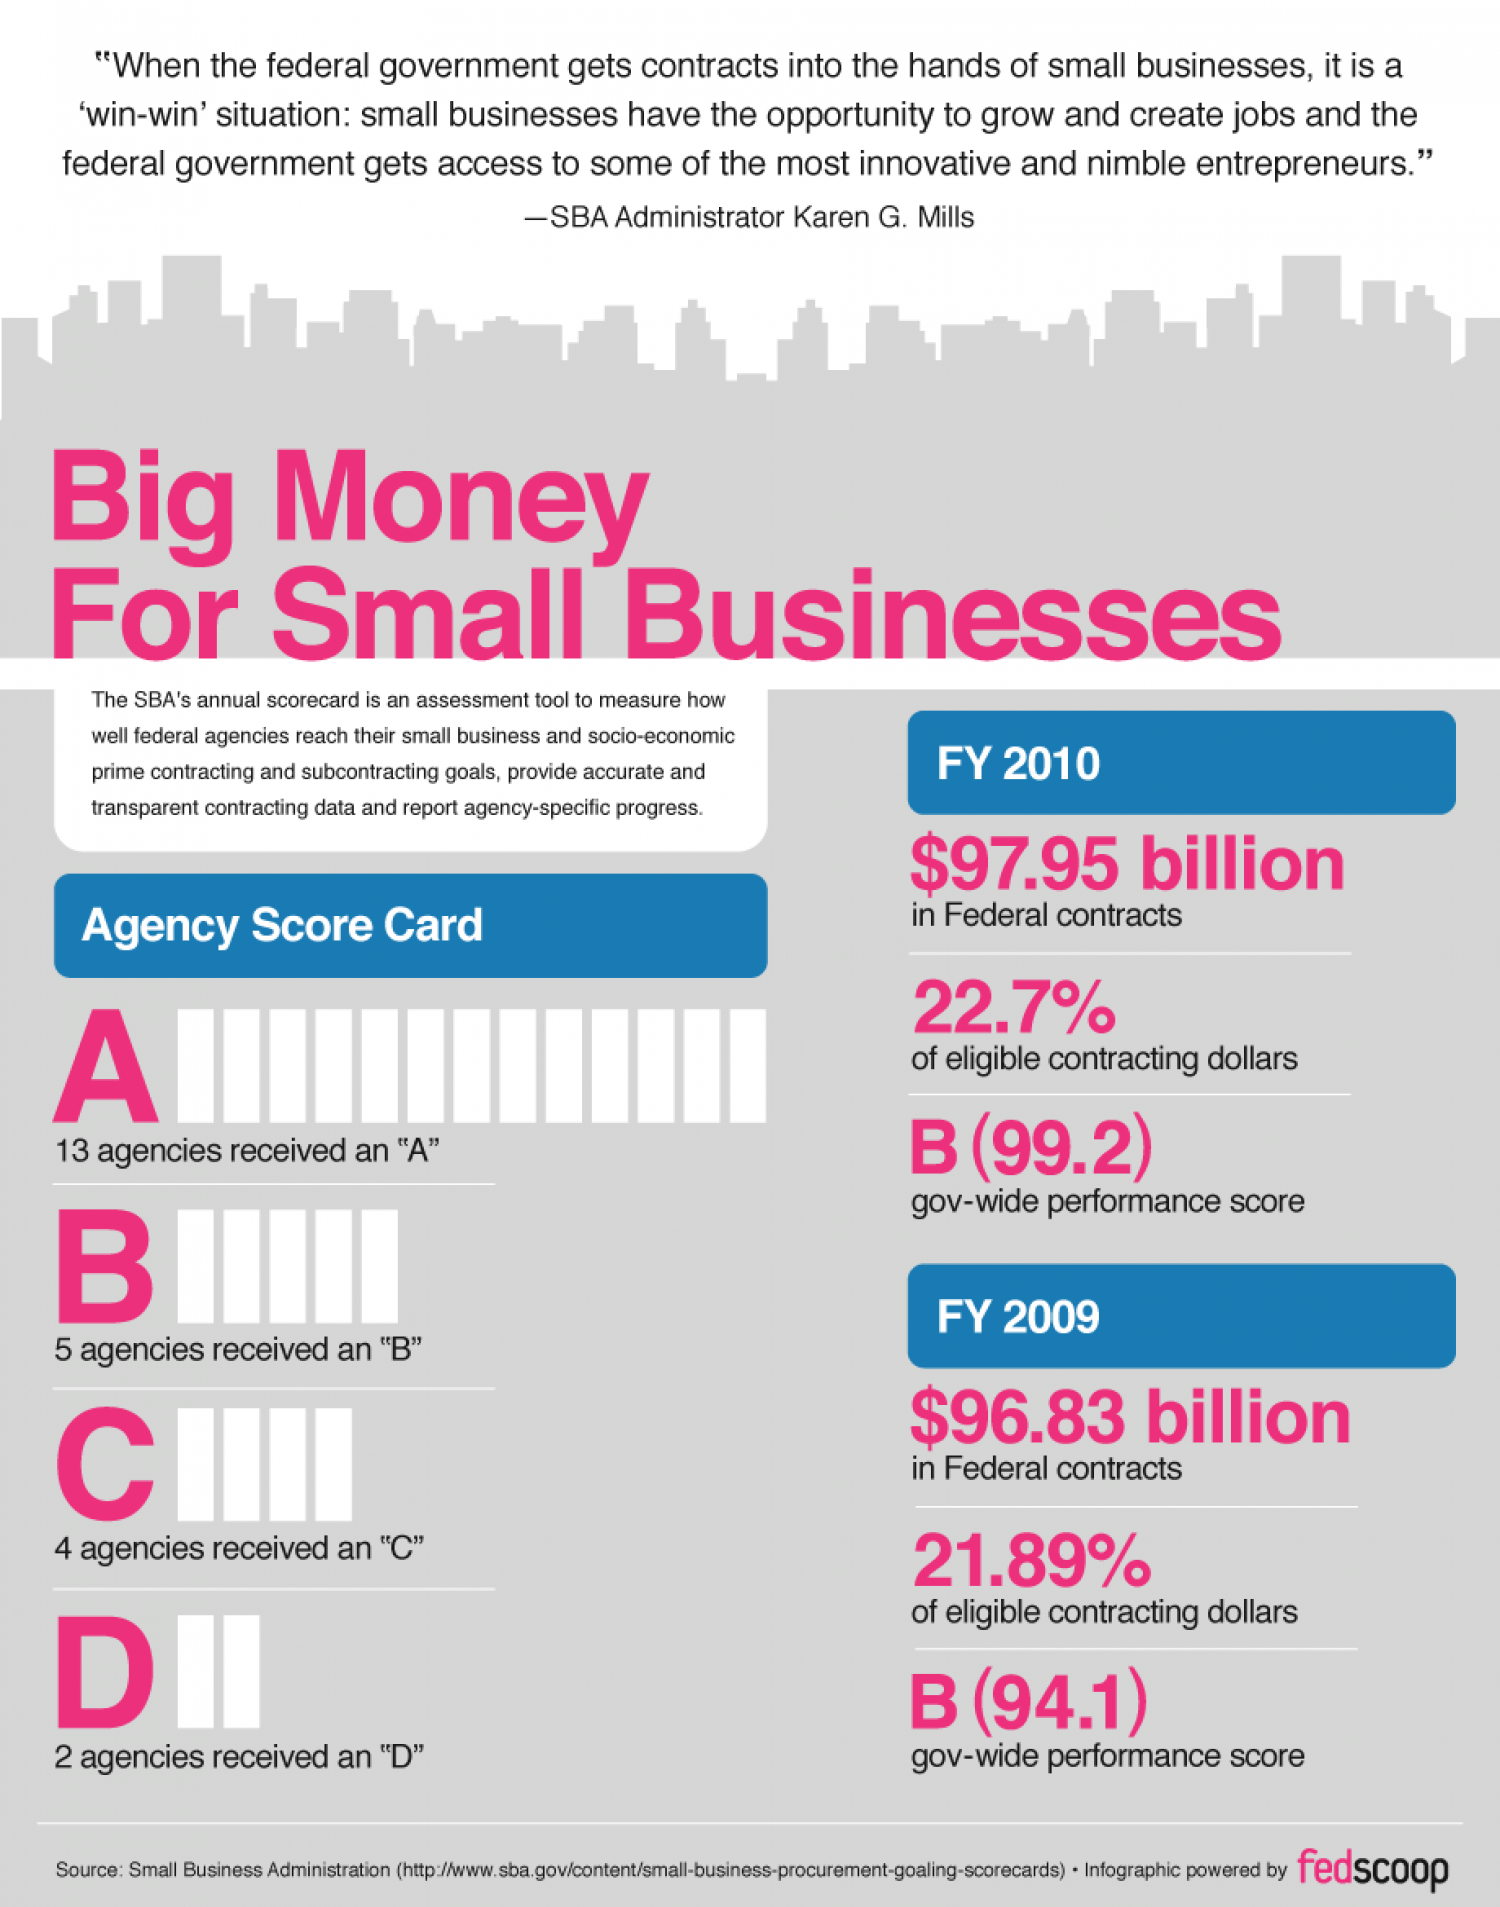 Big Money for Small Businesses Infographic